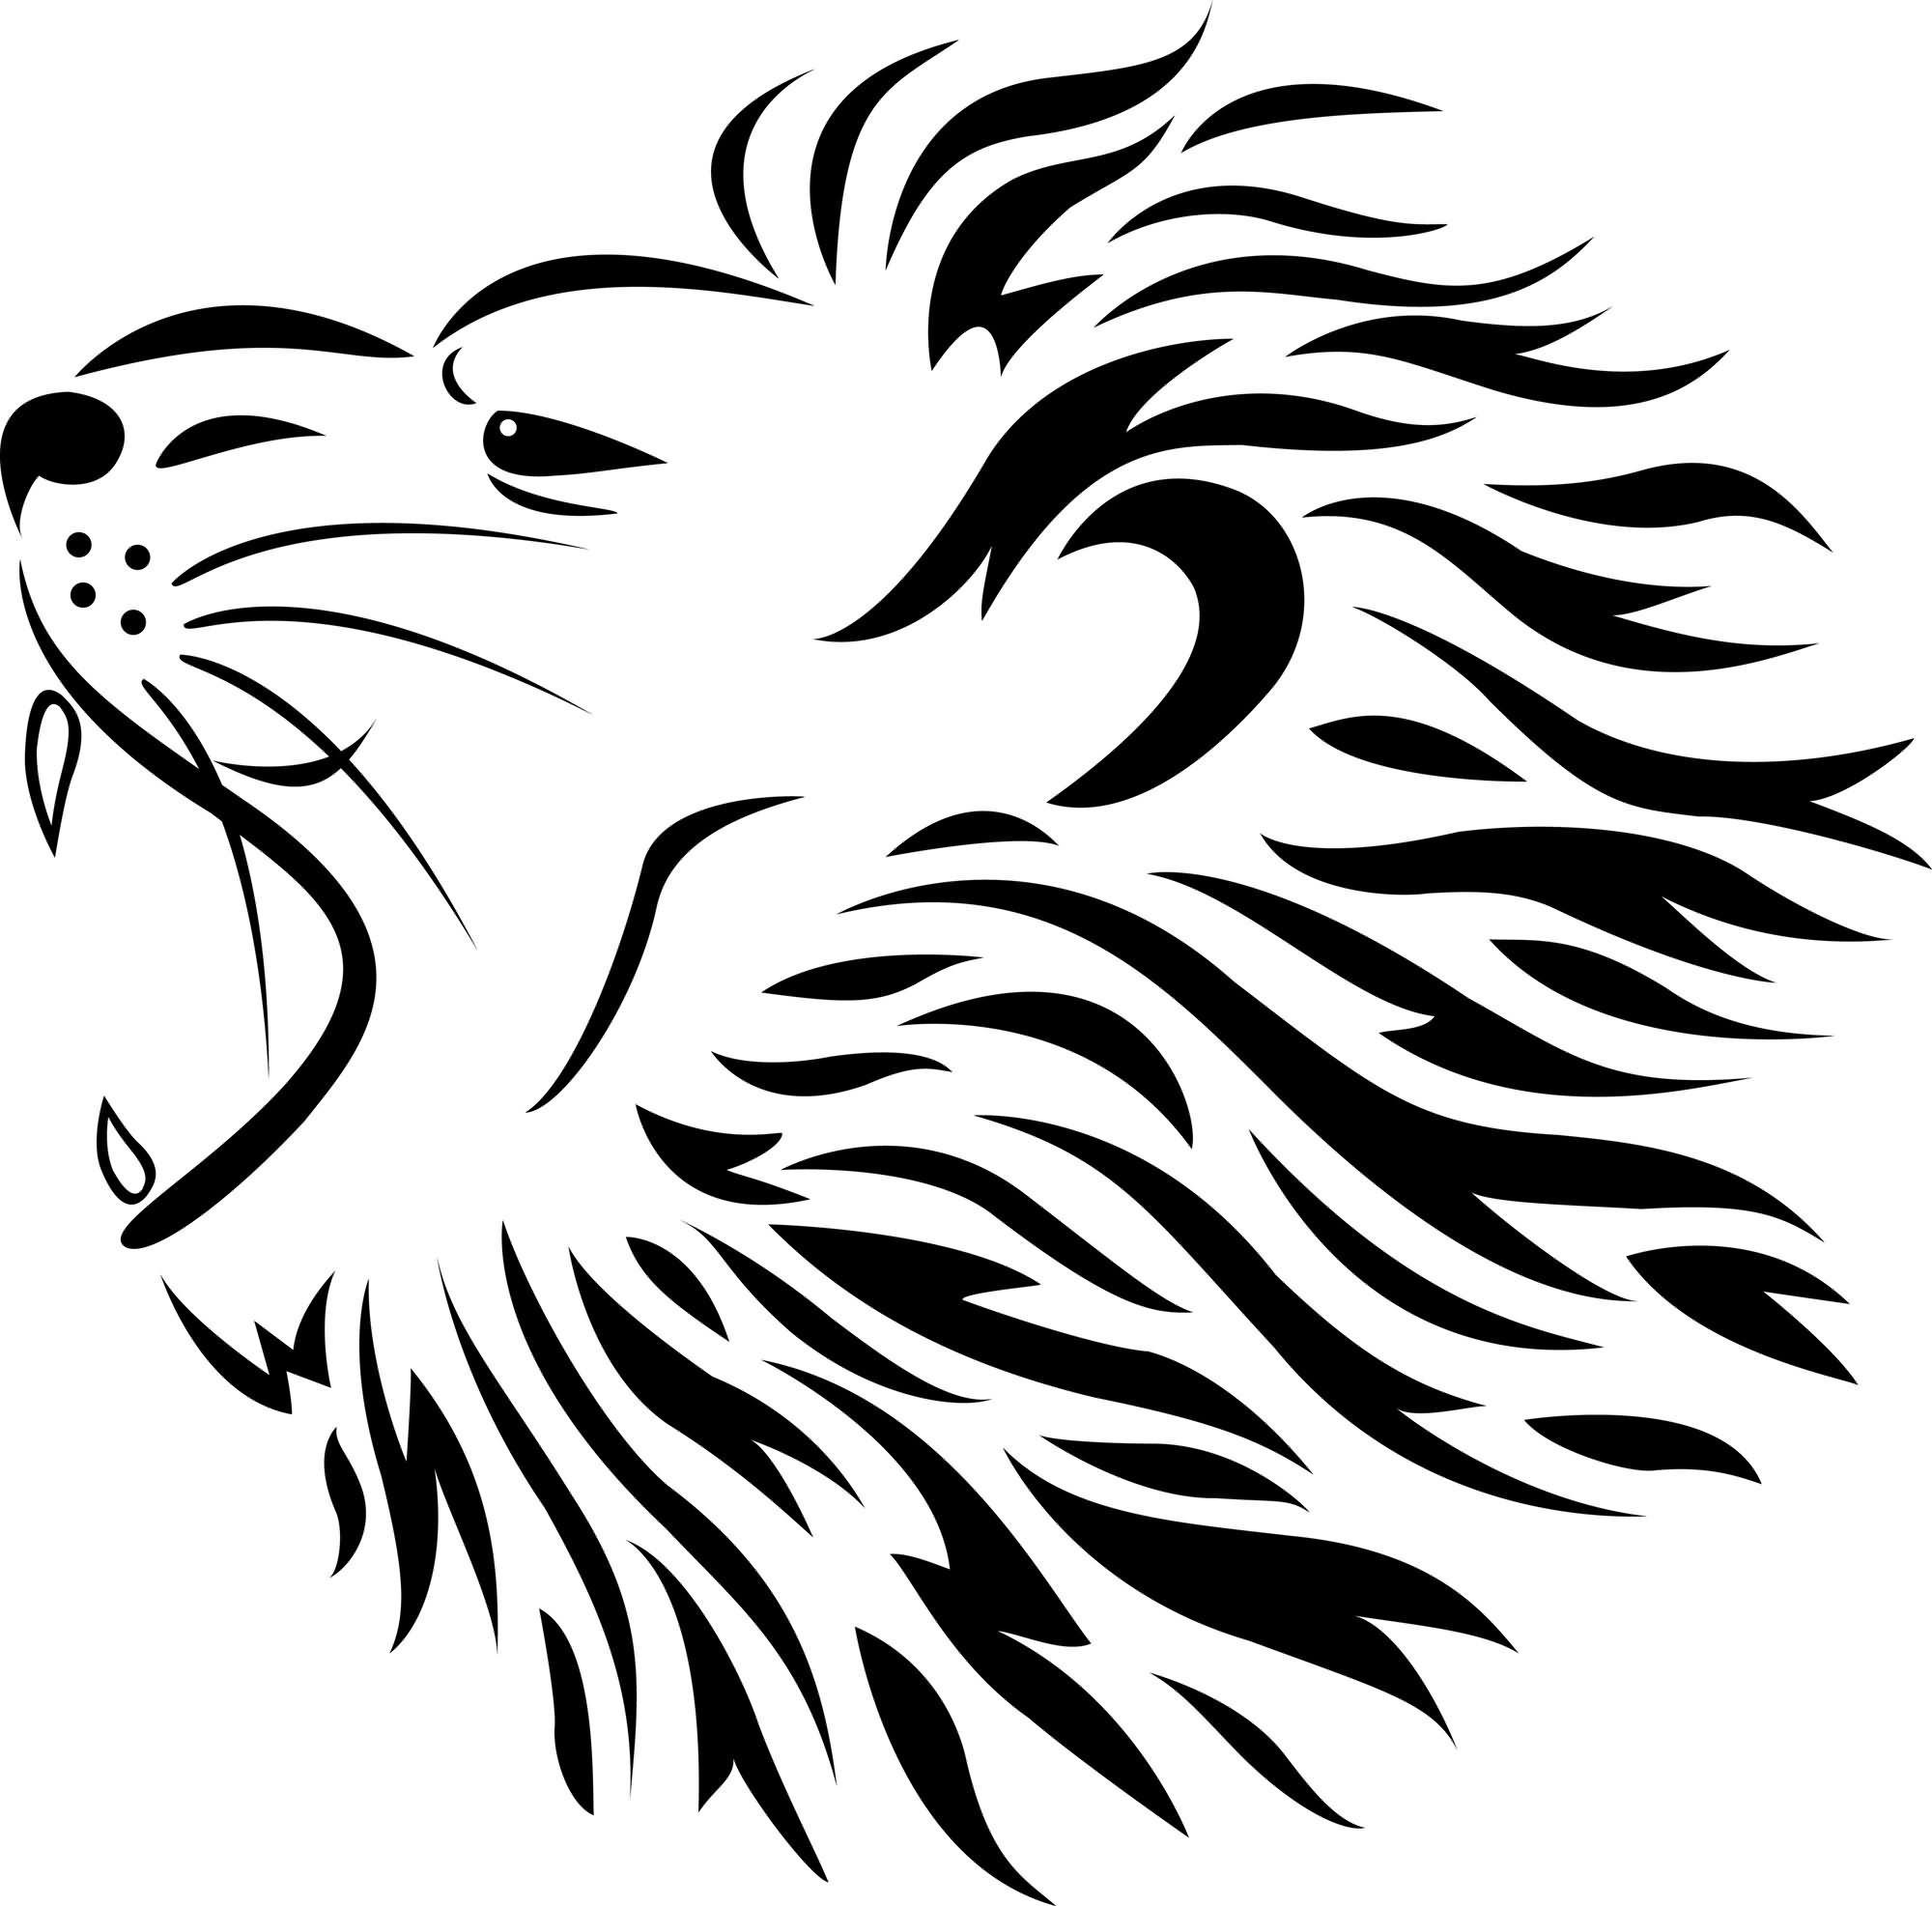 . PlusPng.com Lion Tattoo Black And White 6 Tribal Roaring Lion Head Tattoo Design  2.jpg PlusPng.com  - PNG Lion Head Roaring